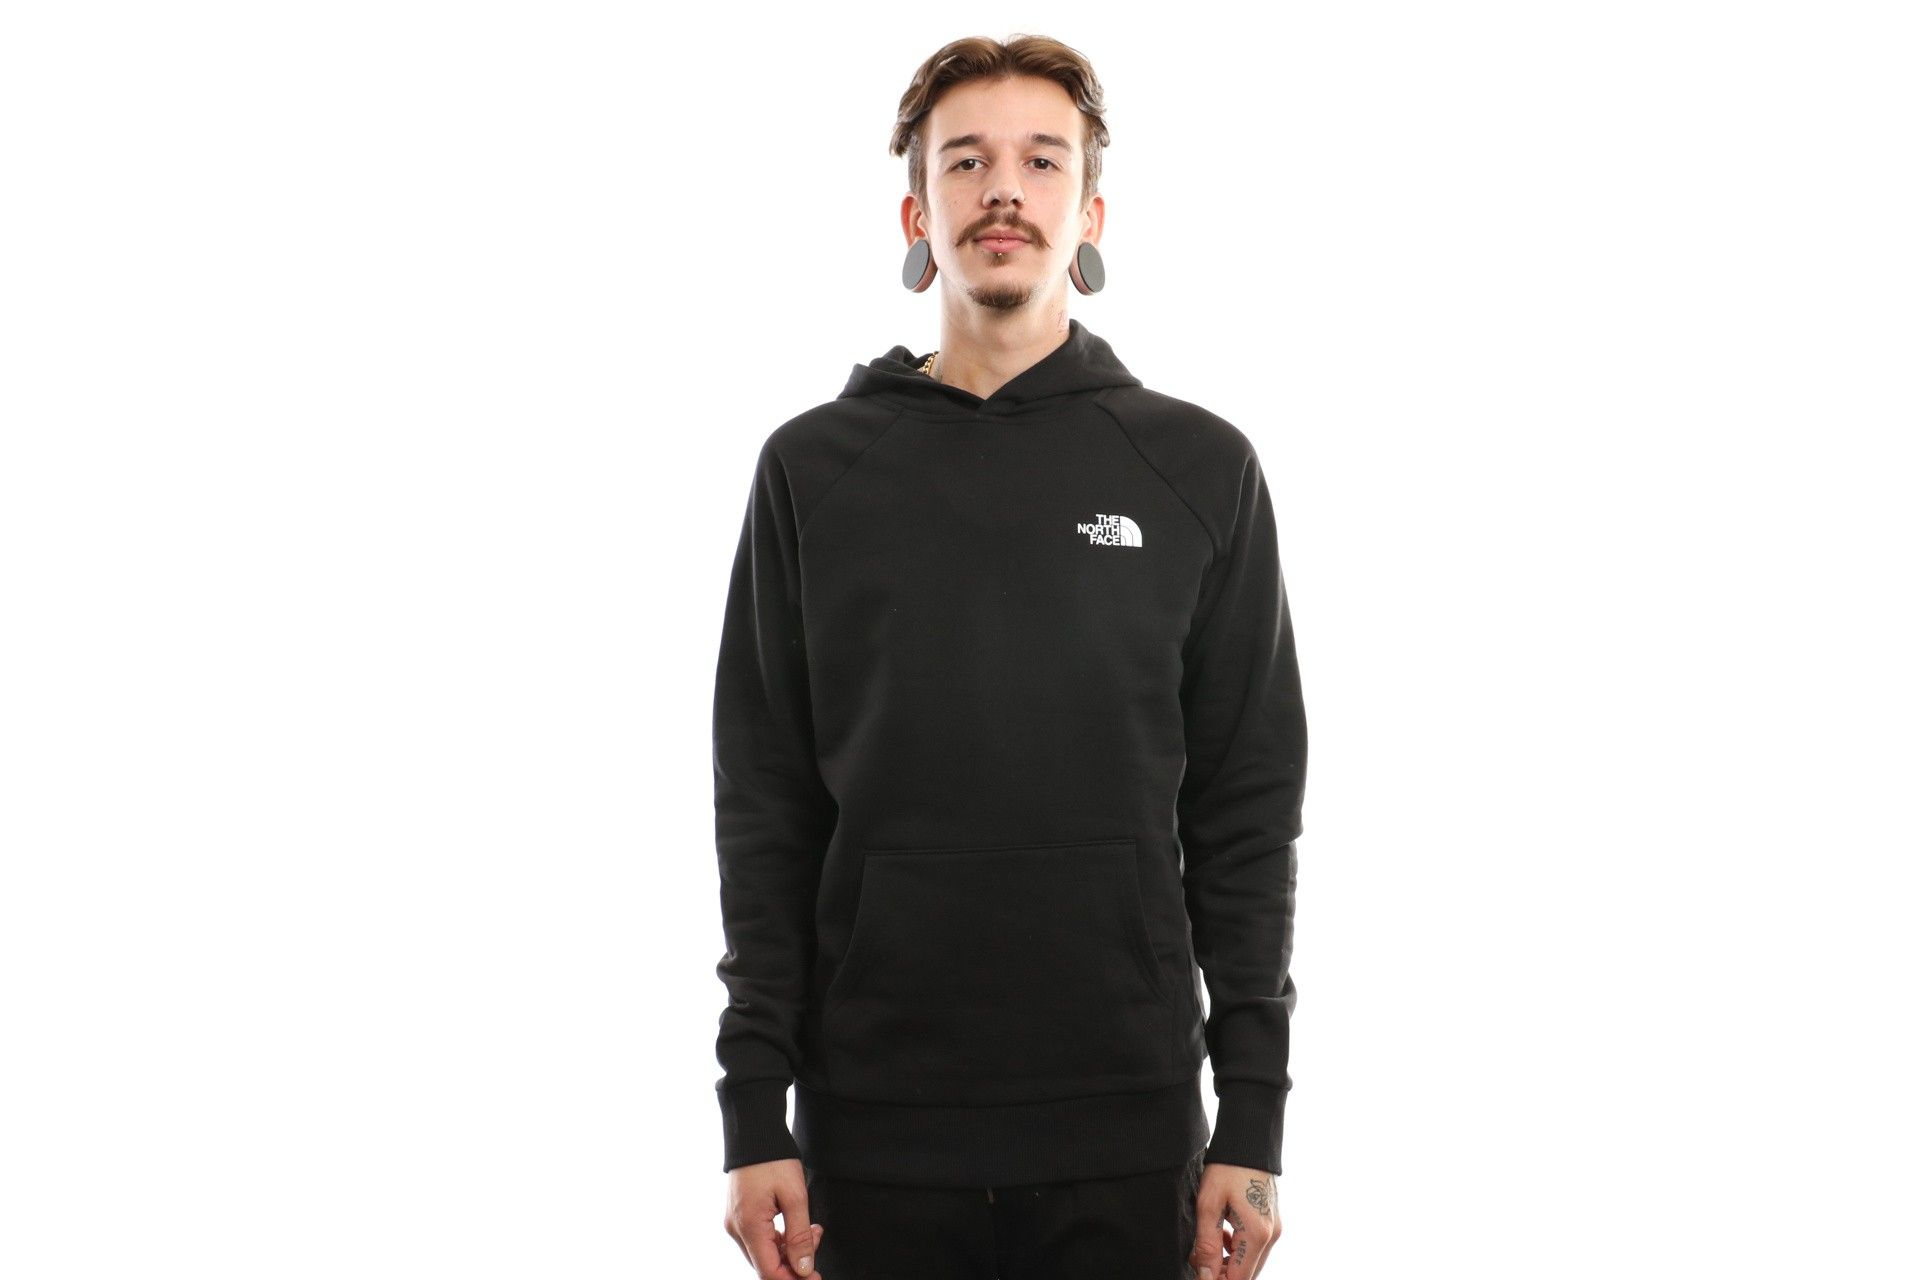 Afbeelding van The North Face Raglan Red Box Hd T92Zwuky4 Hooded Tnf Black/Tnf White